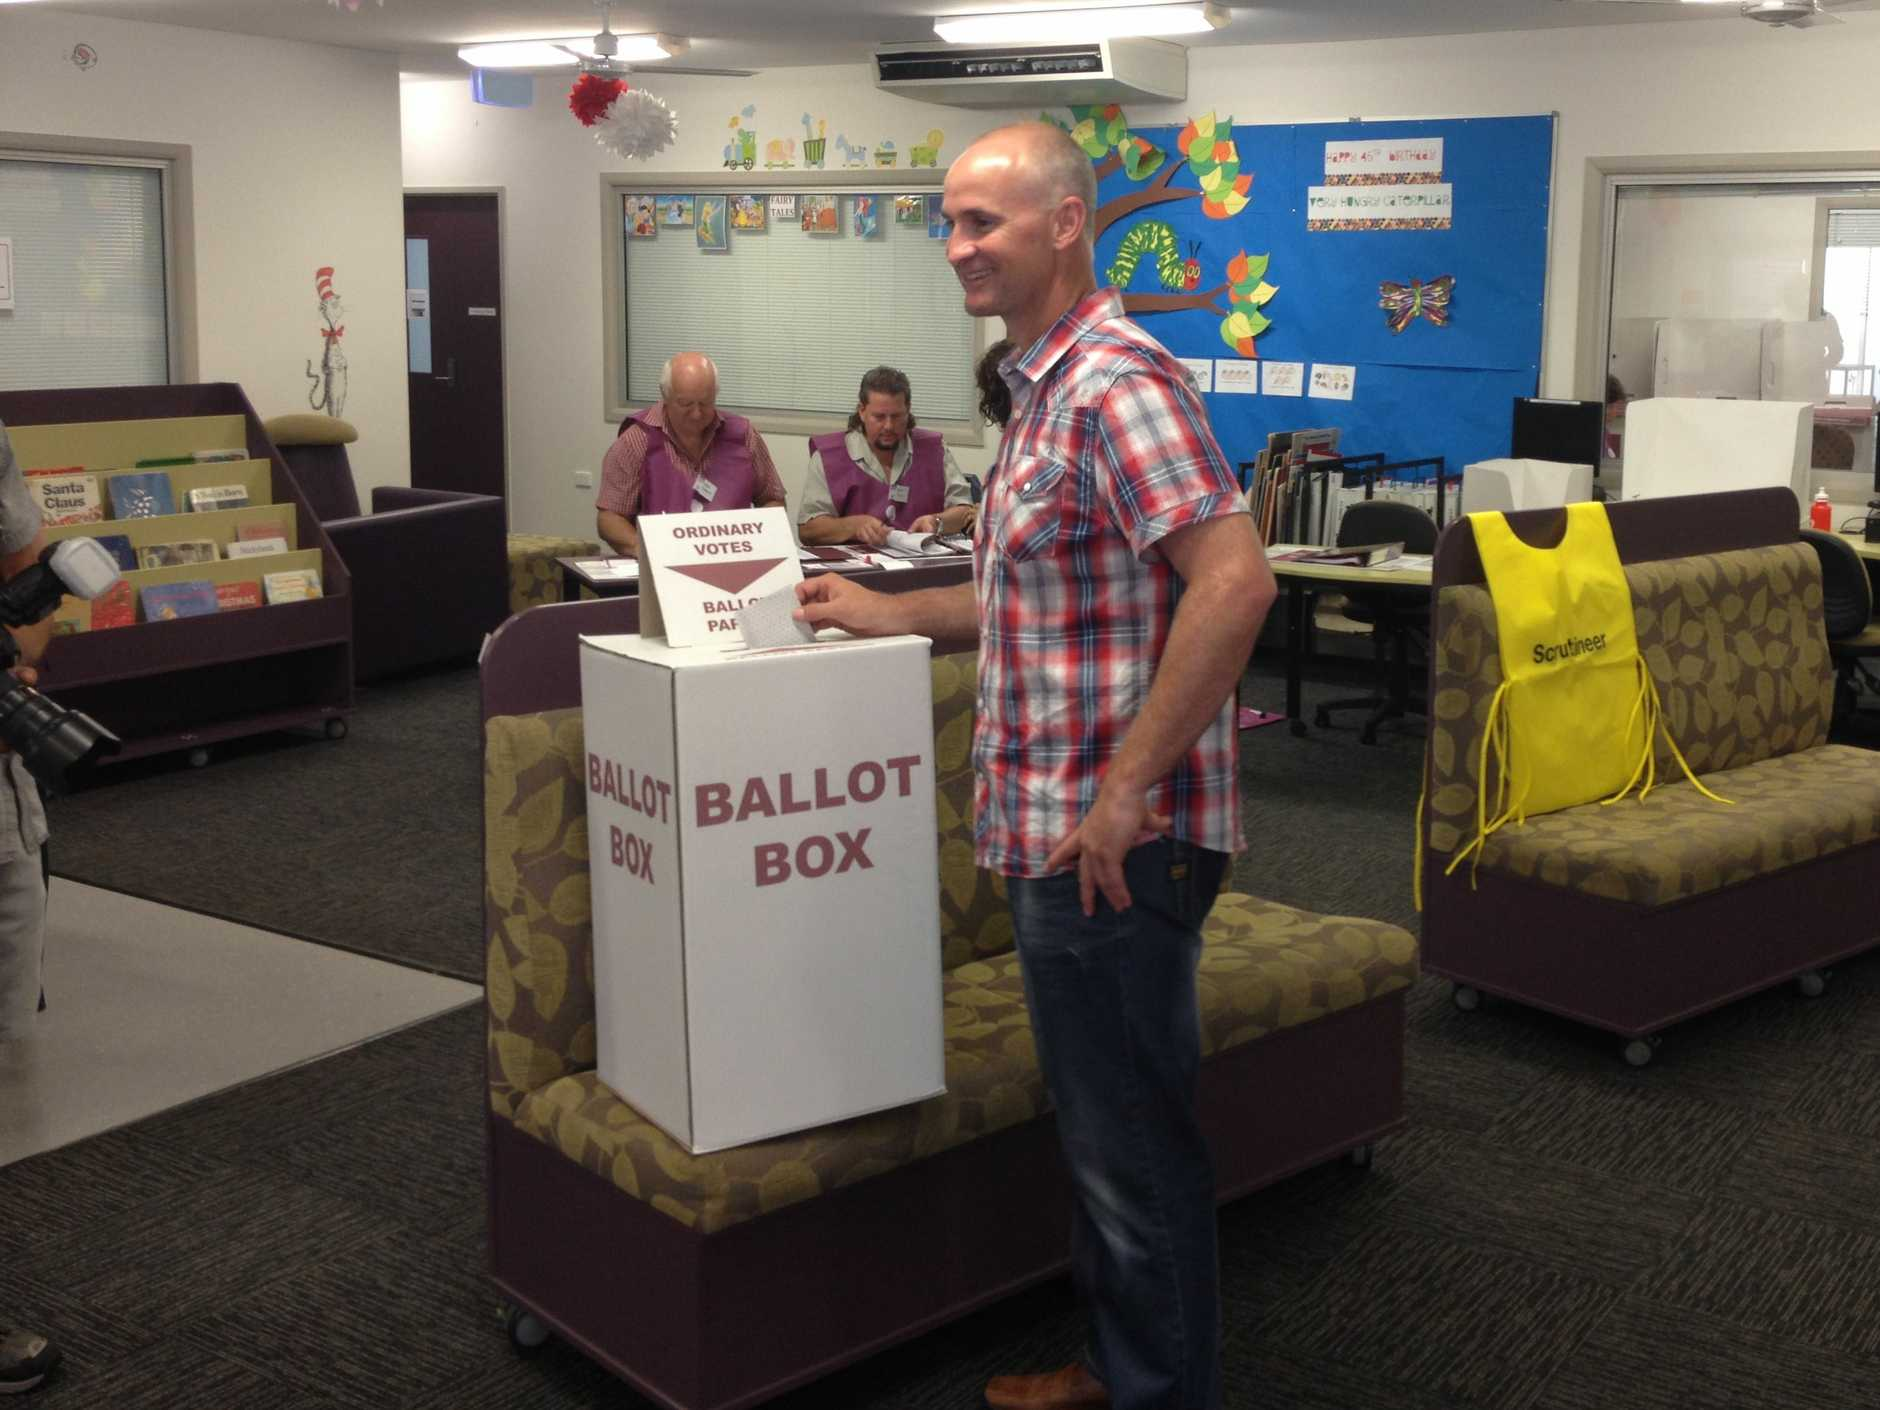 Glenn Butcher votes.